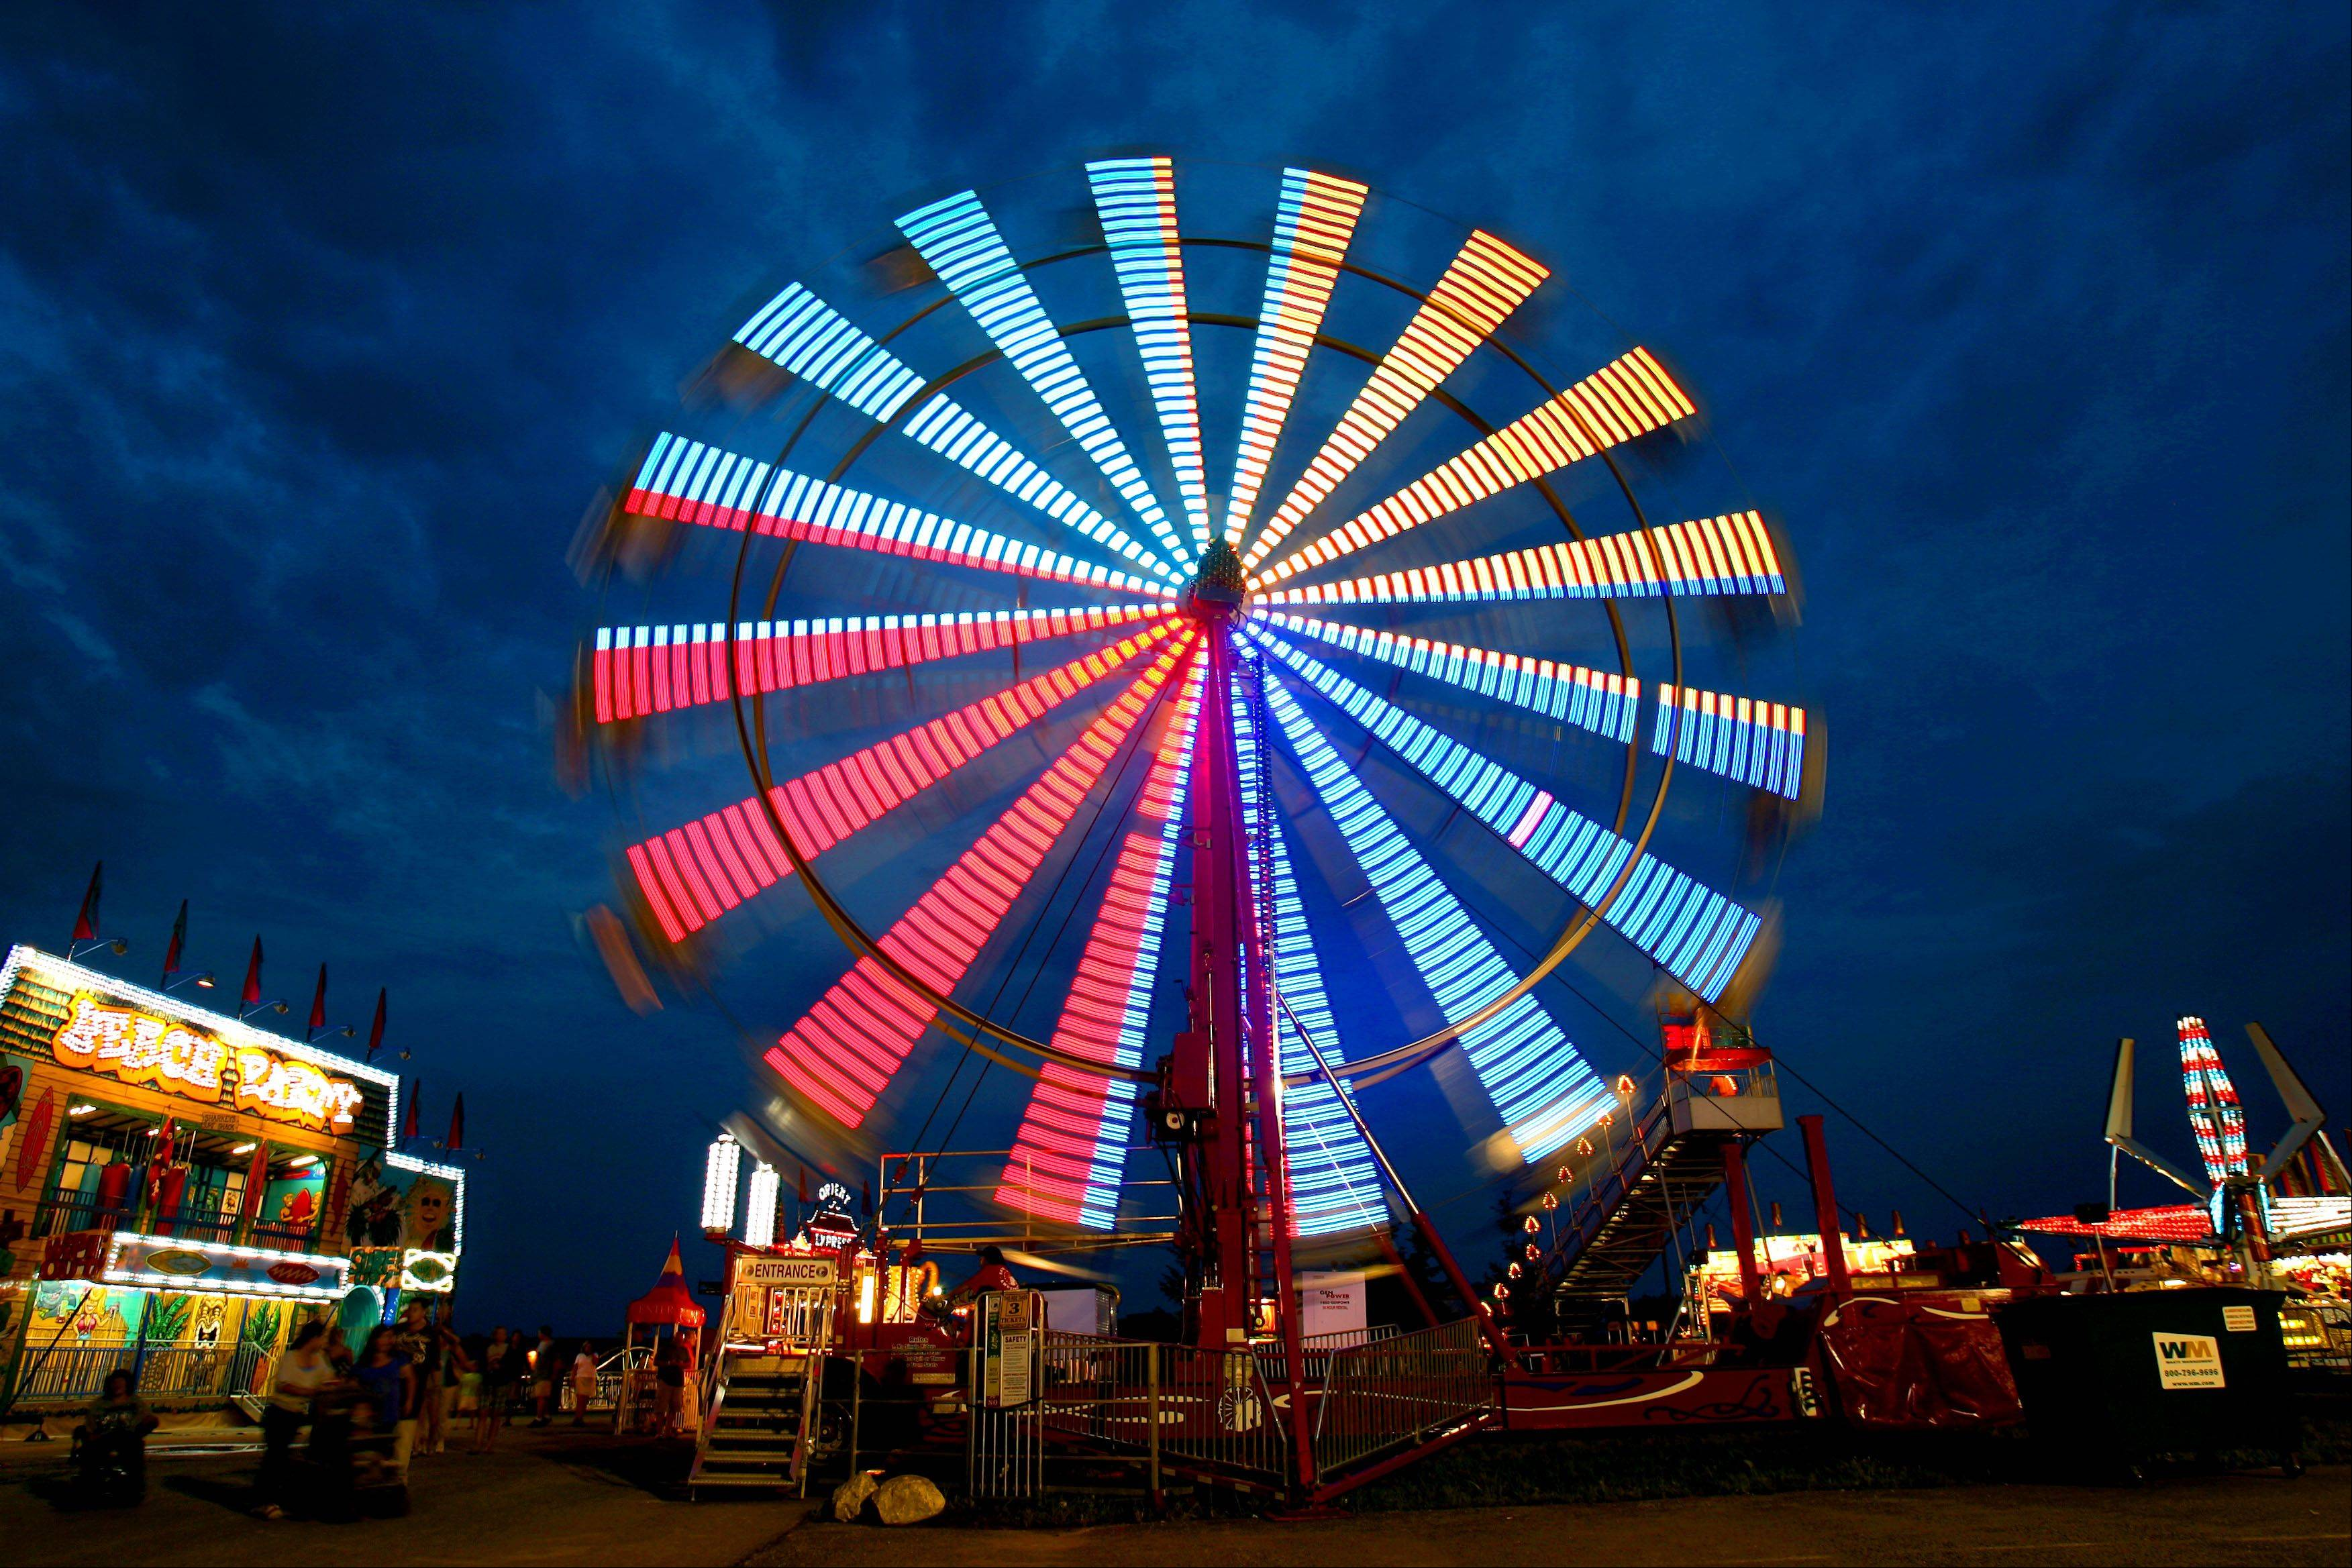 The Ferris Wheel spins in the evening sky during the Lake County Fair Wednesday in Grayslake.